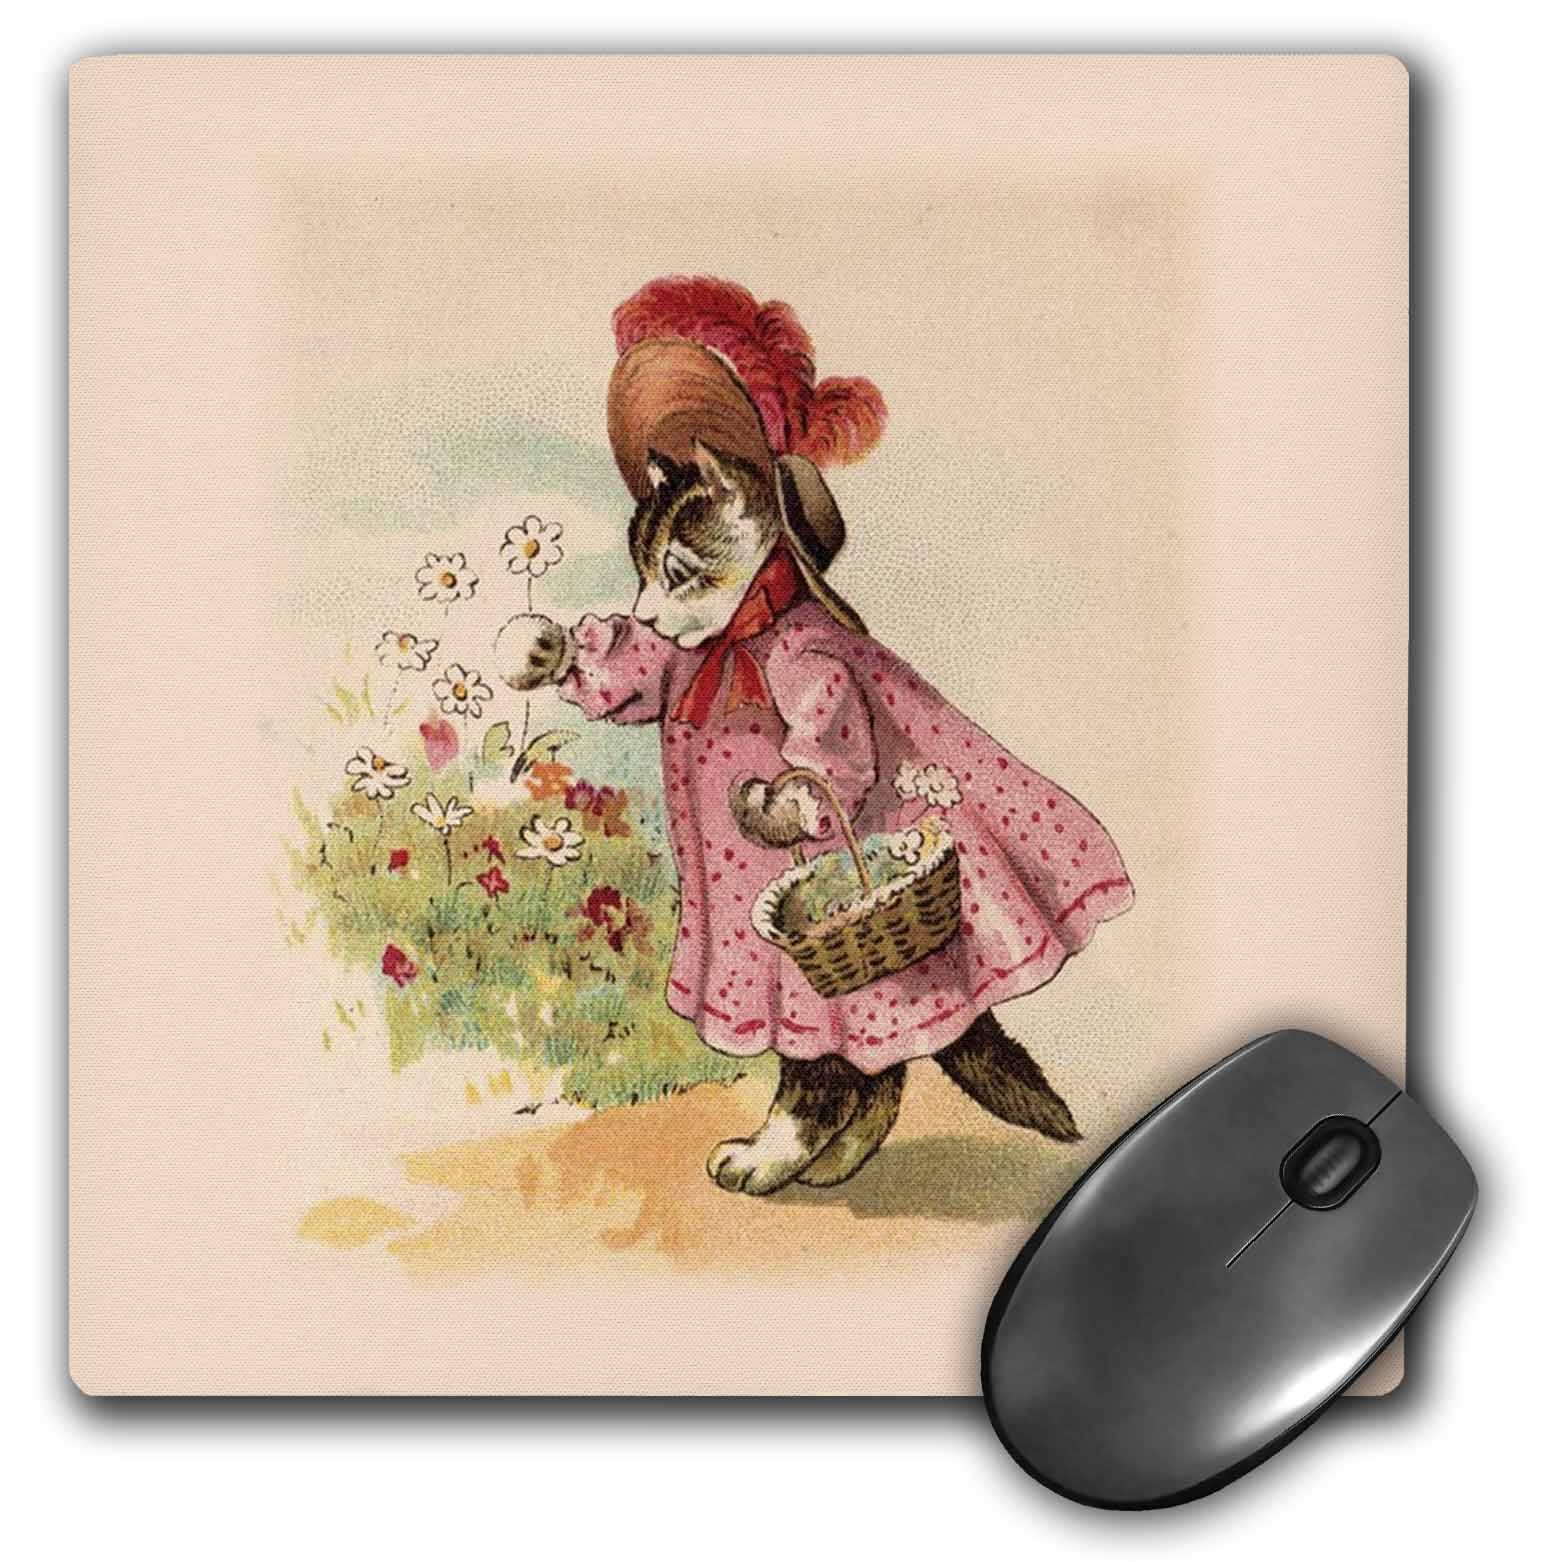 3dRose Cute Victorian Cat In Pink Dress, Mouse Pad, 8 by 8 inches